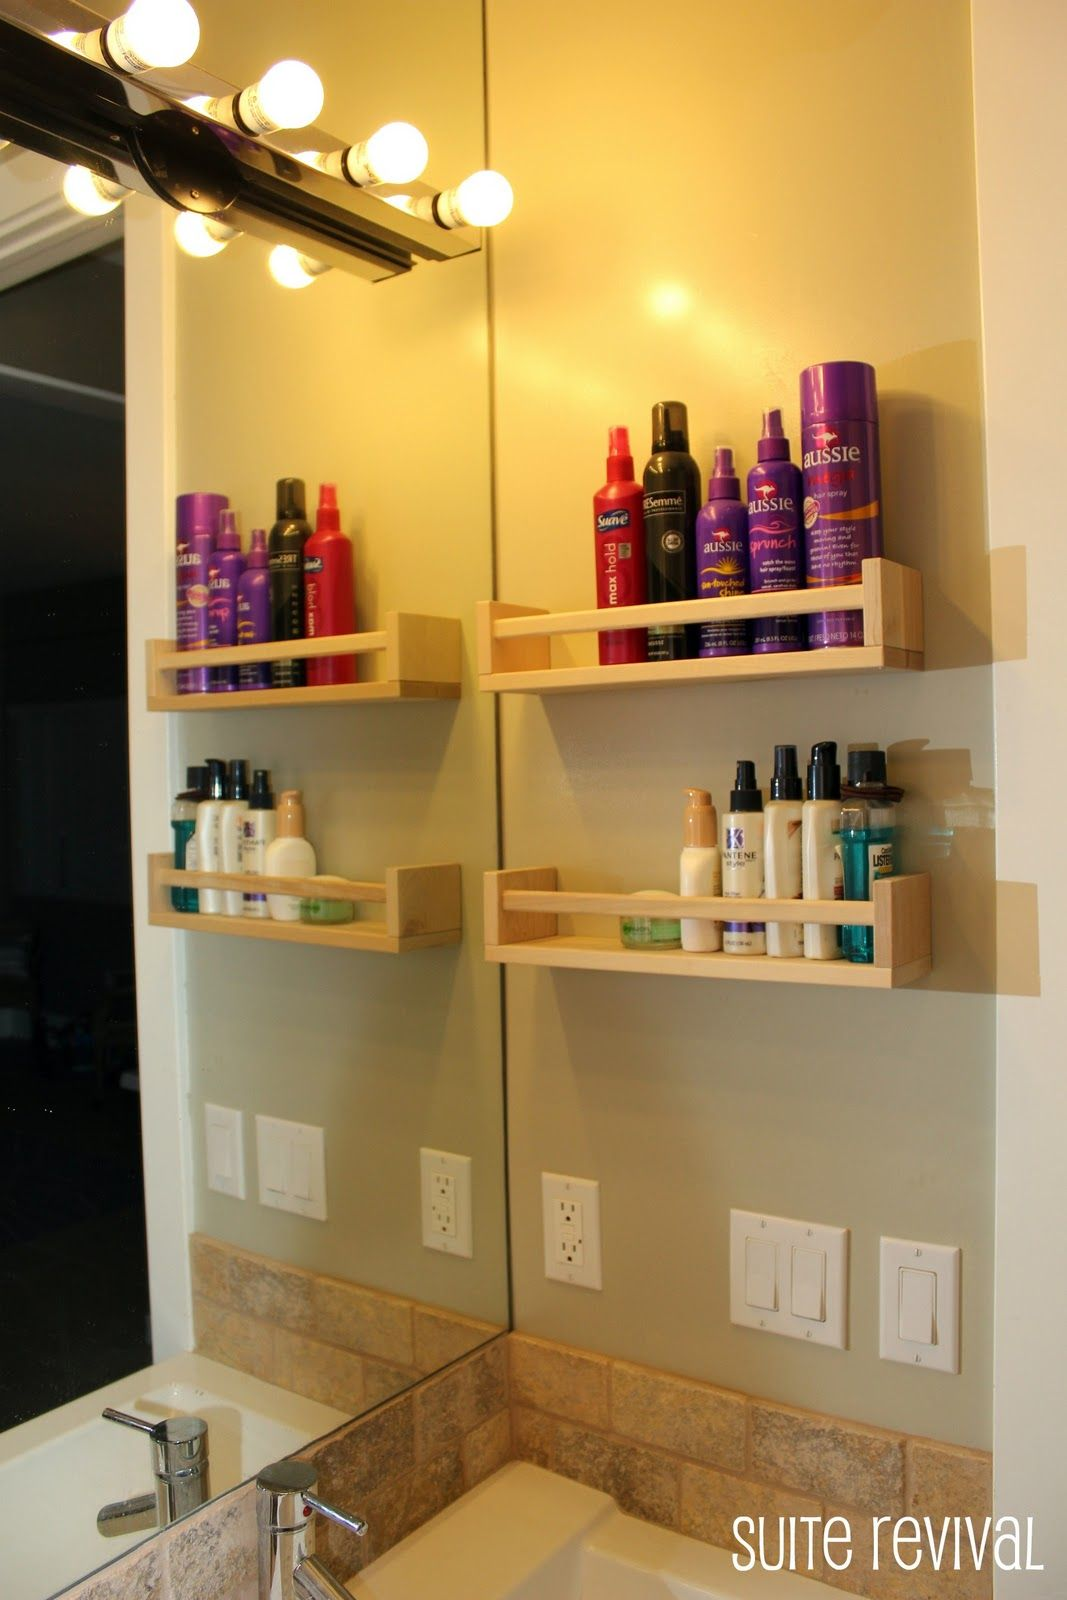 Ikea spice racks for hair products, etc.